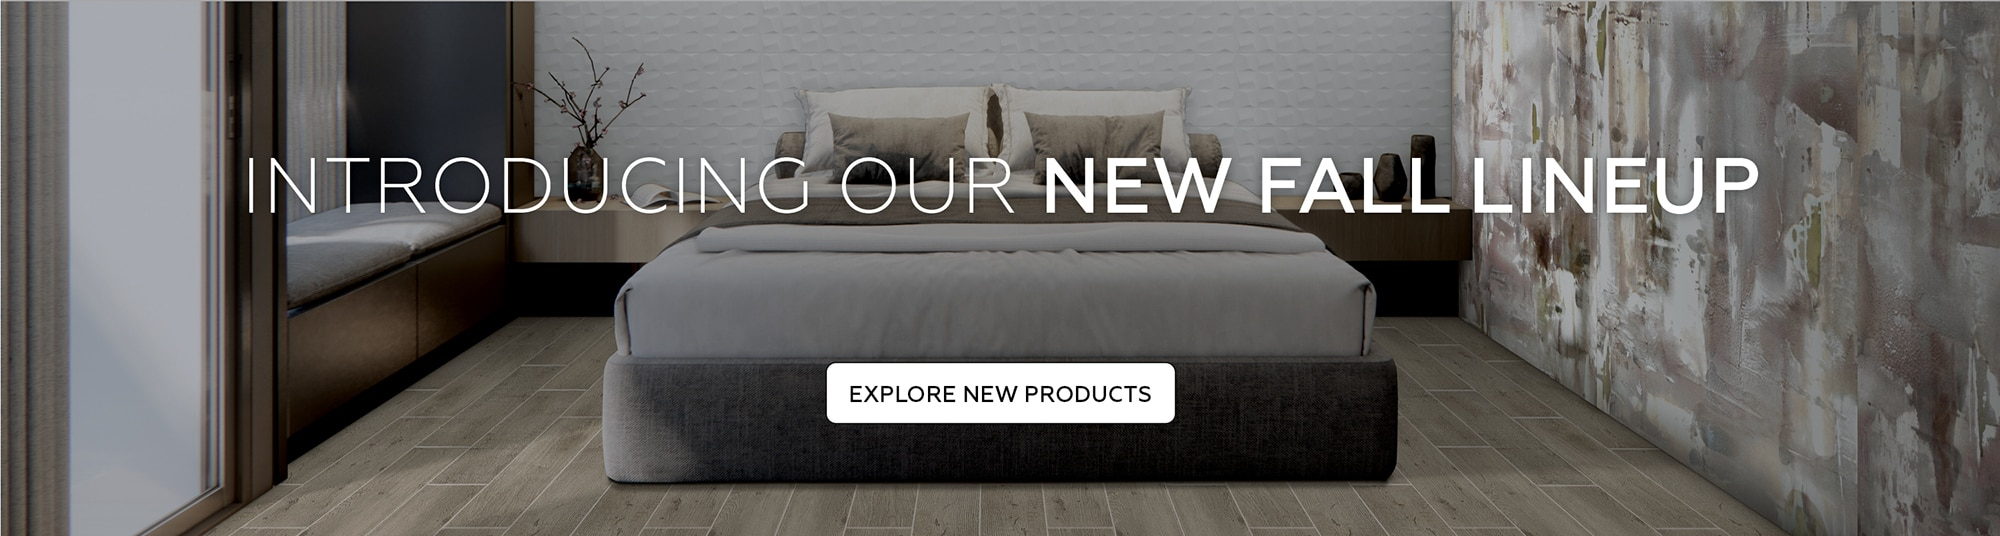 Introducing Our New Fall Lineup: Explore New Products